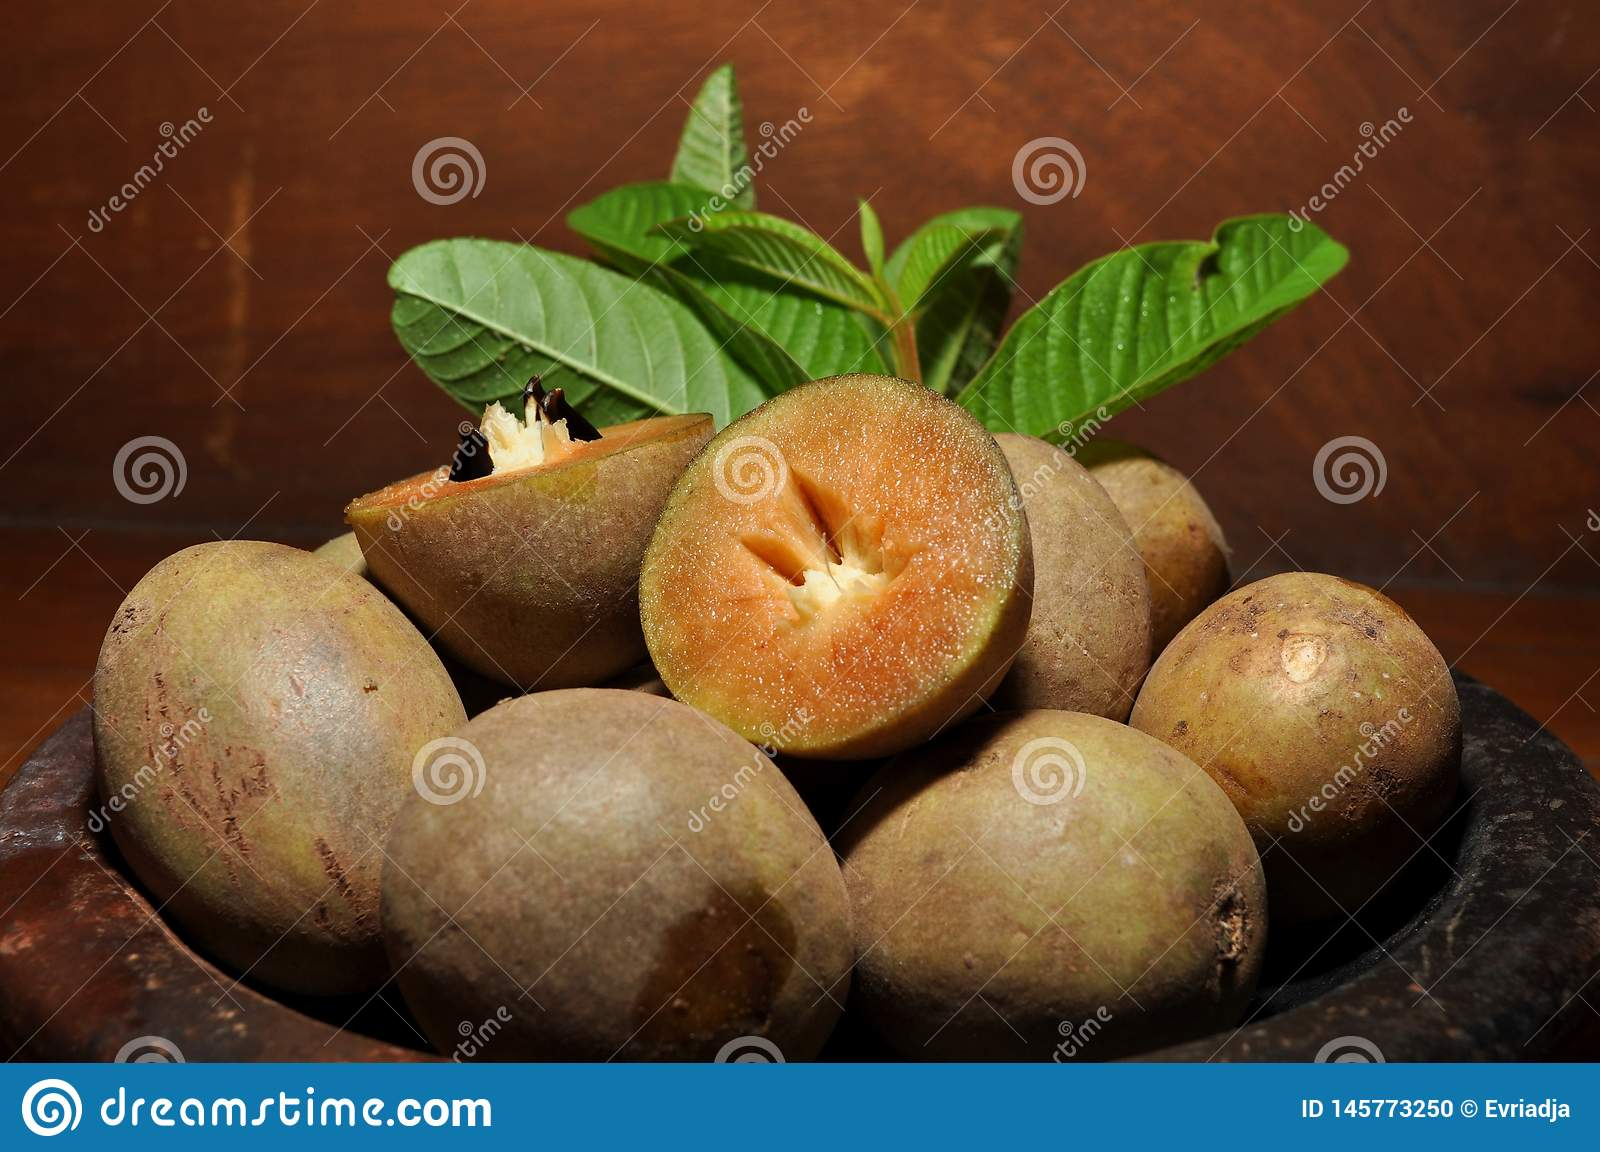 Sapodilla fruit with green leaves isolated on wooden background